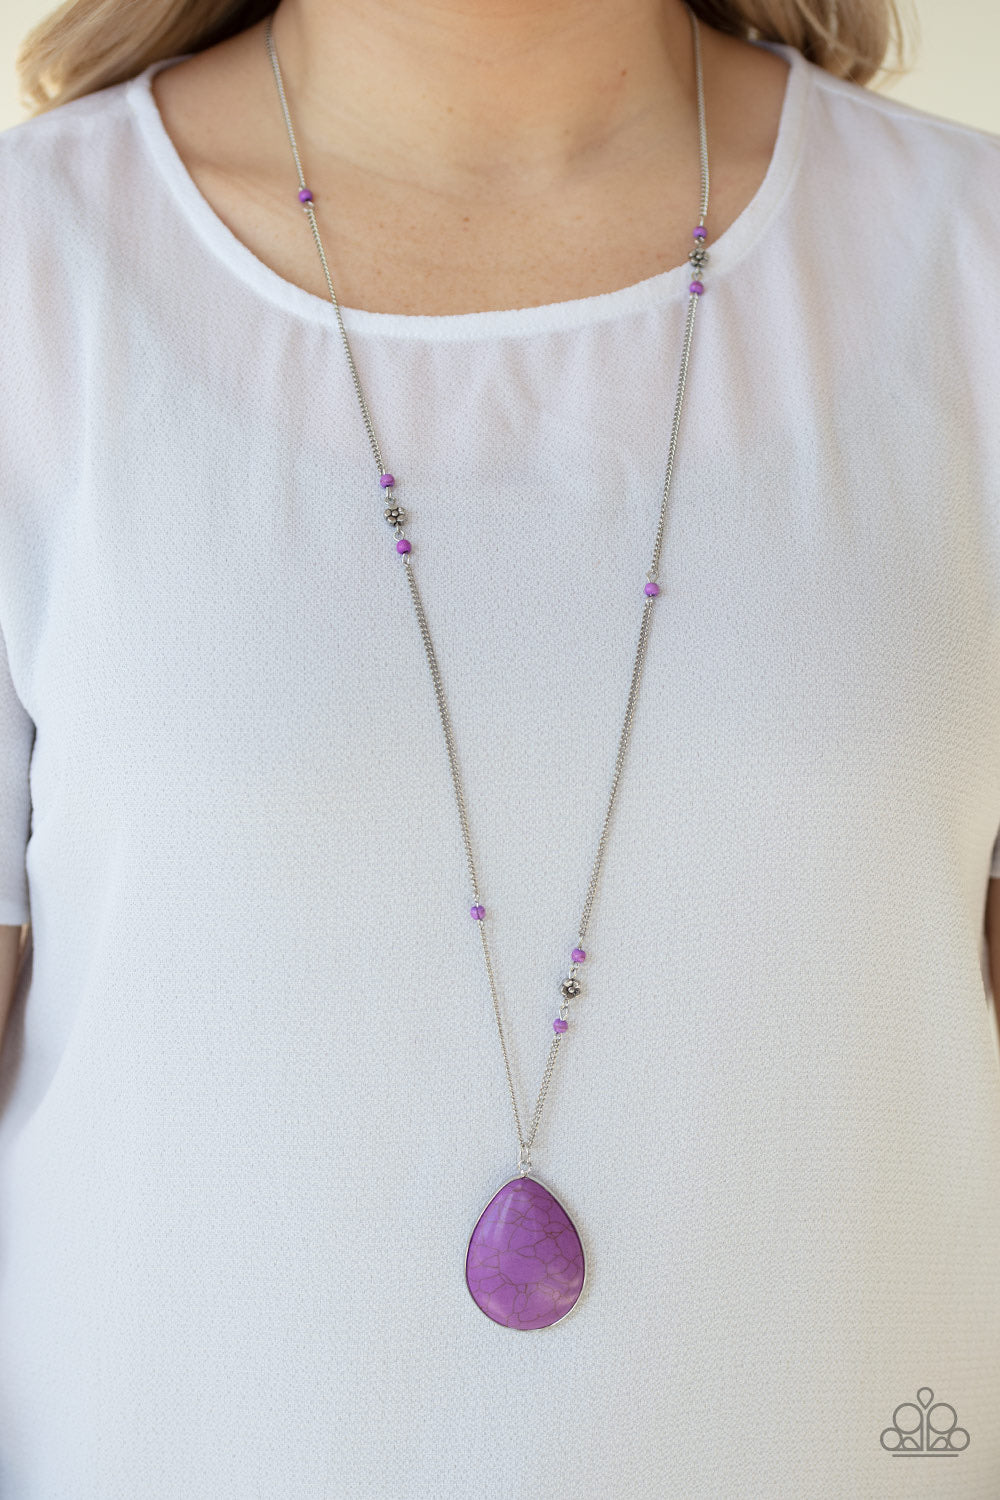 Desert Meadow Purple Paparazzi Necklace - JewelTonez Jewelry